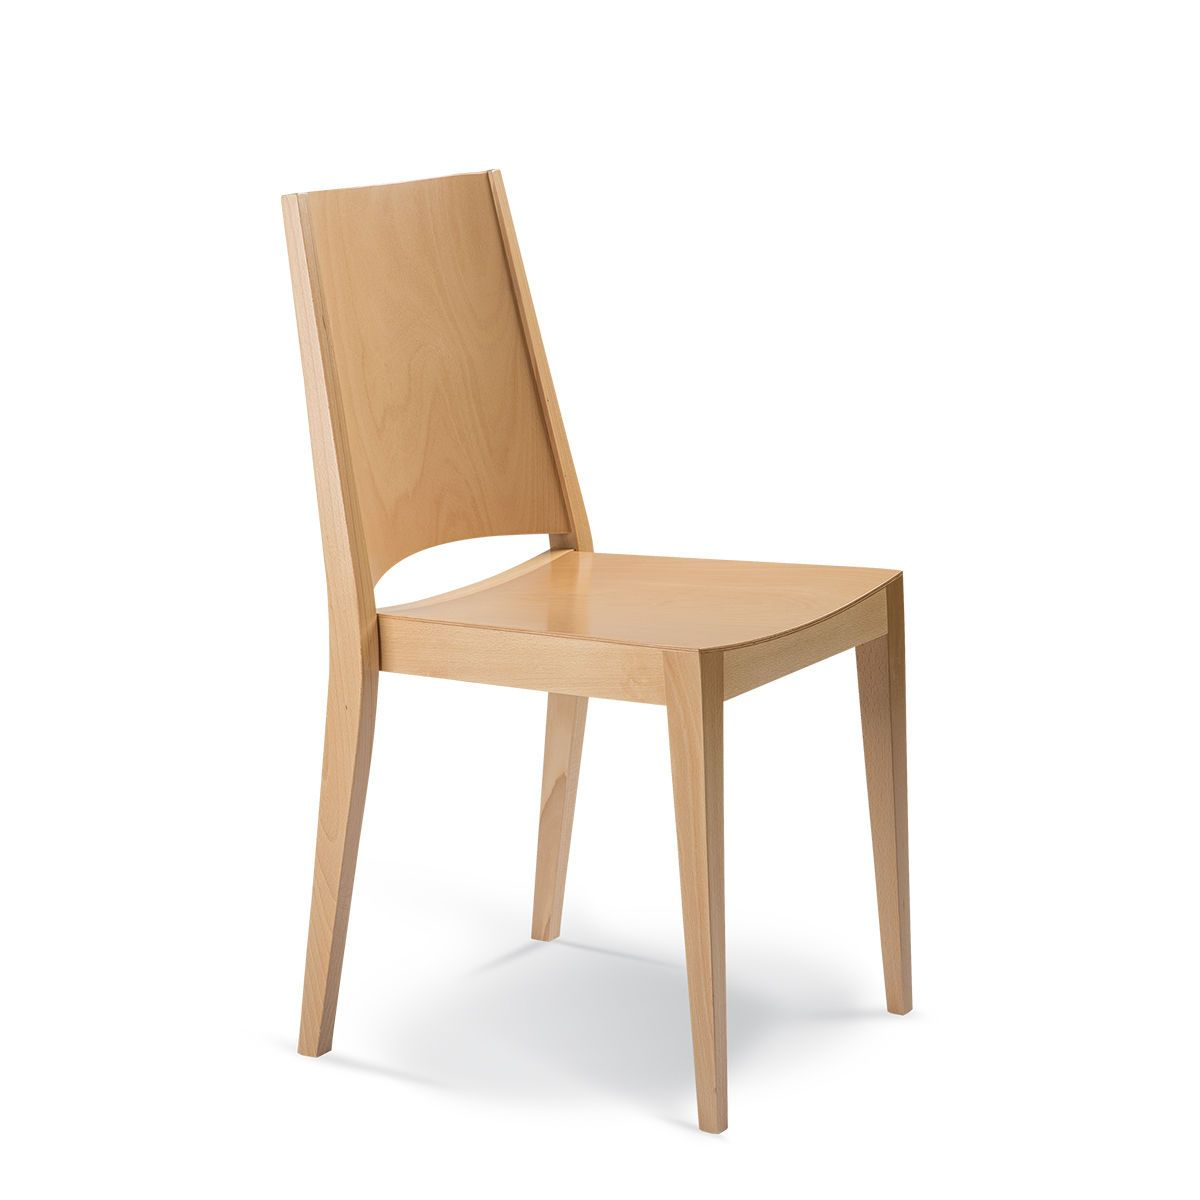 PANEL Chair